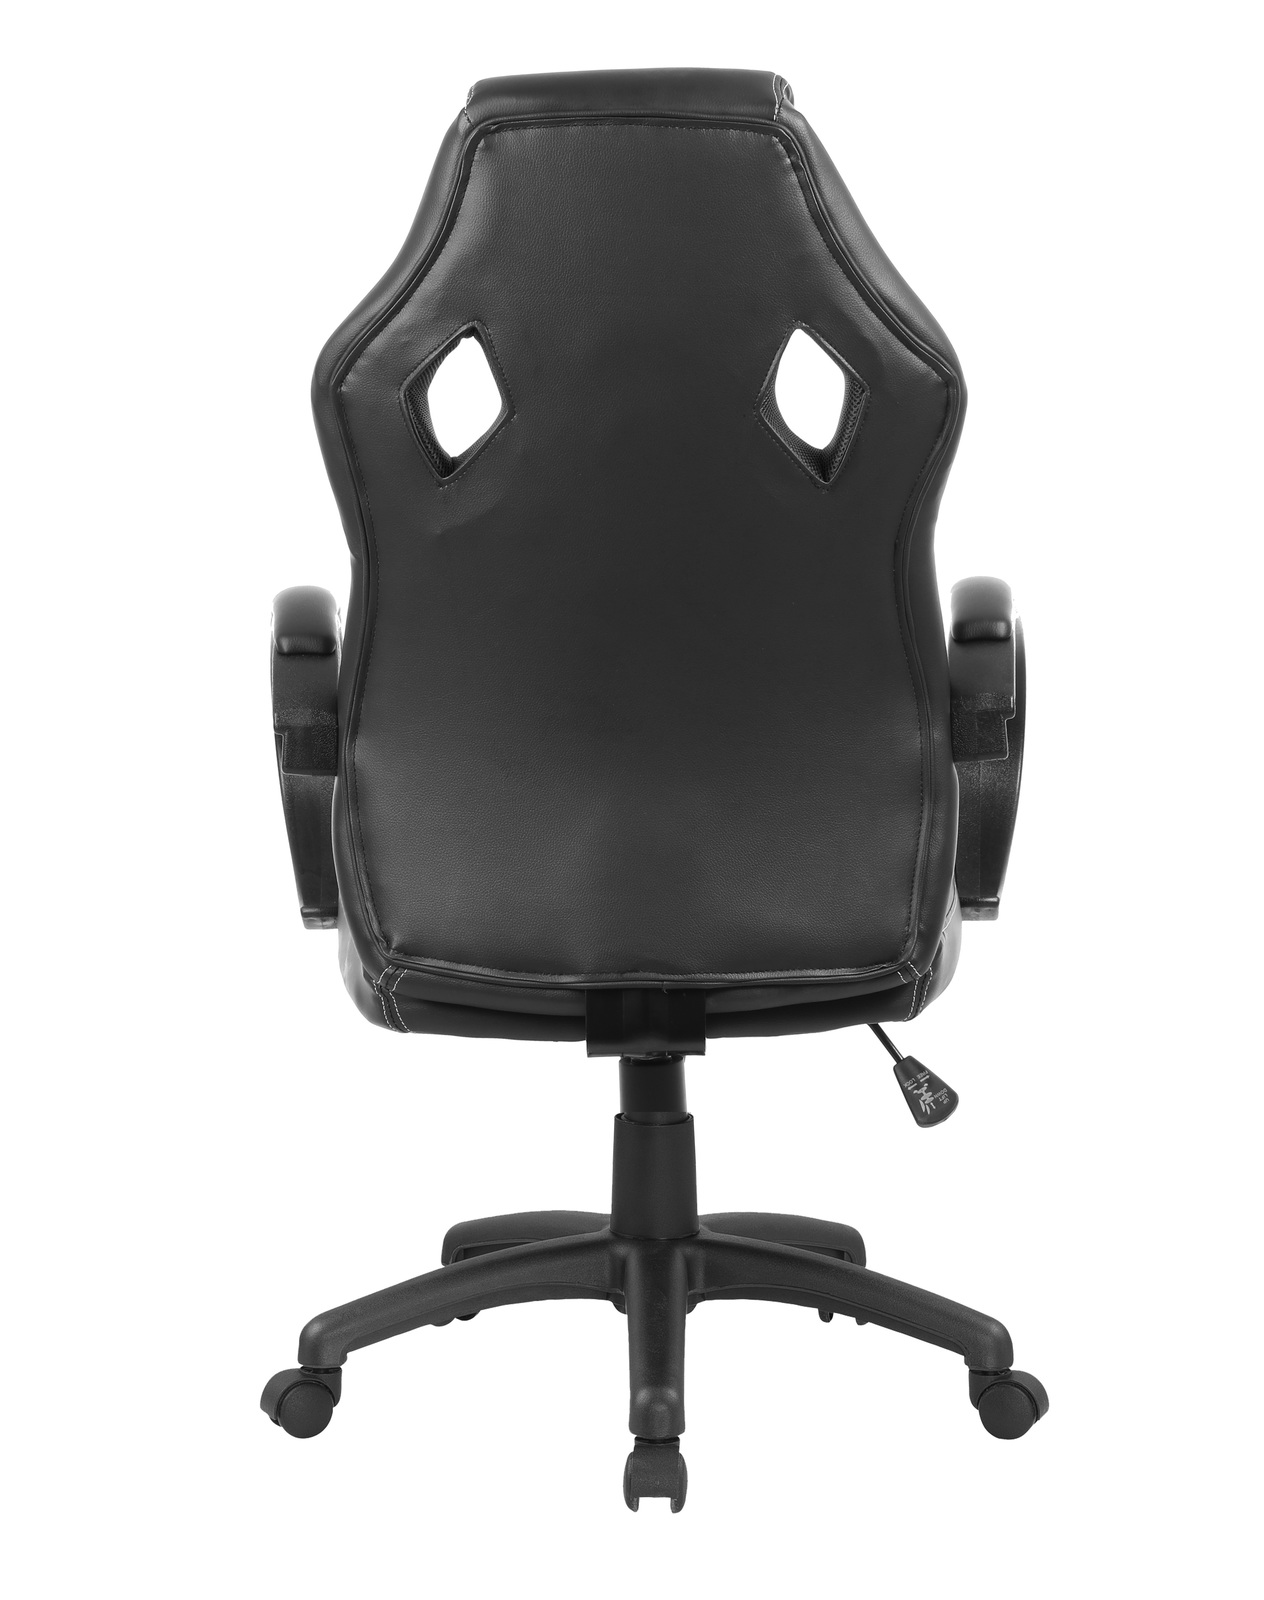 Gorilla Gaming Chair - Black for PC image